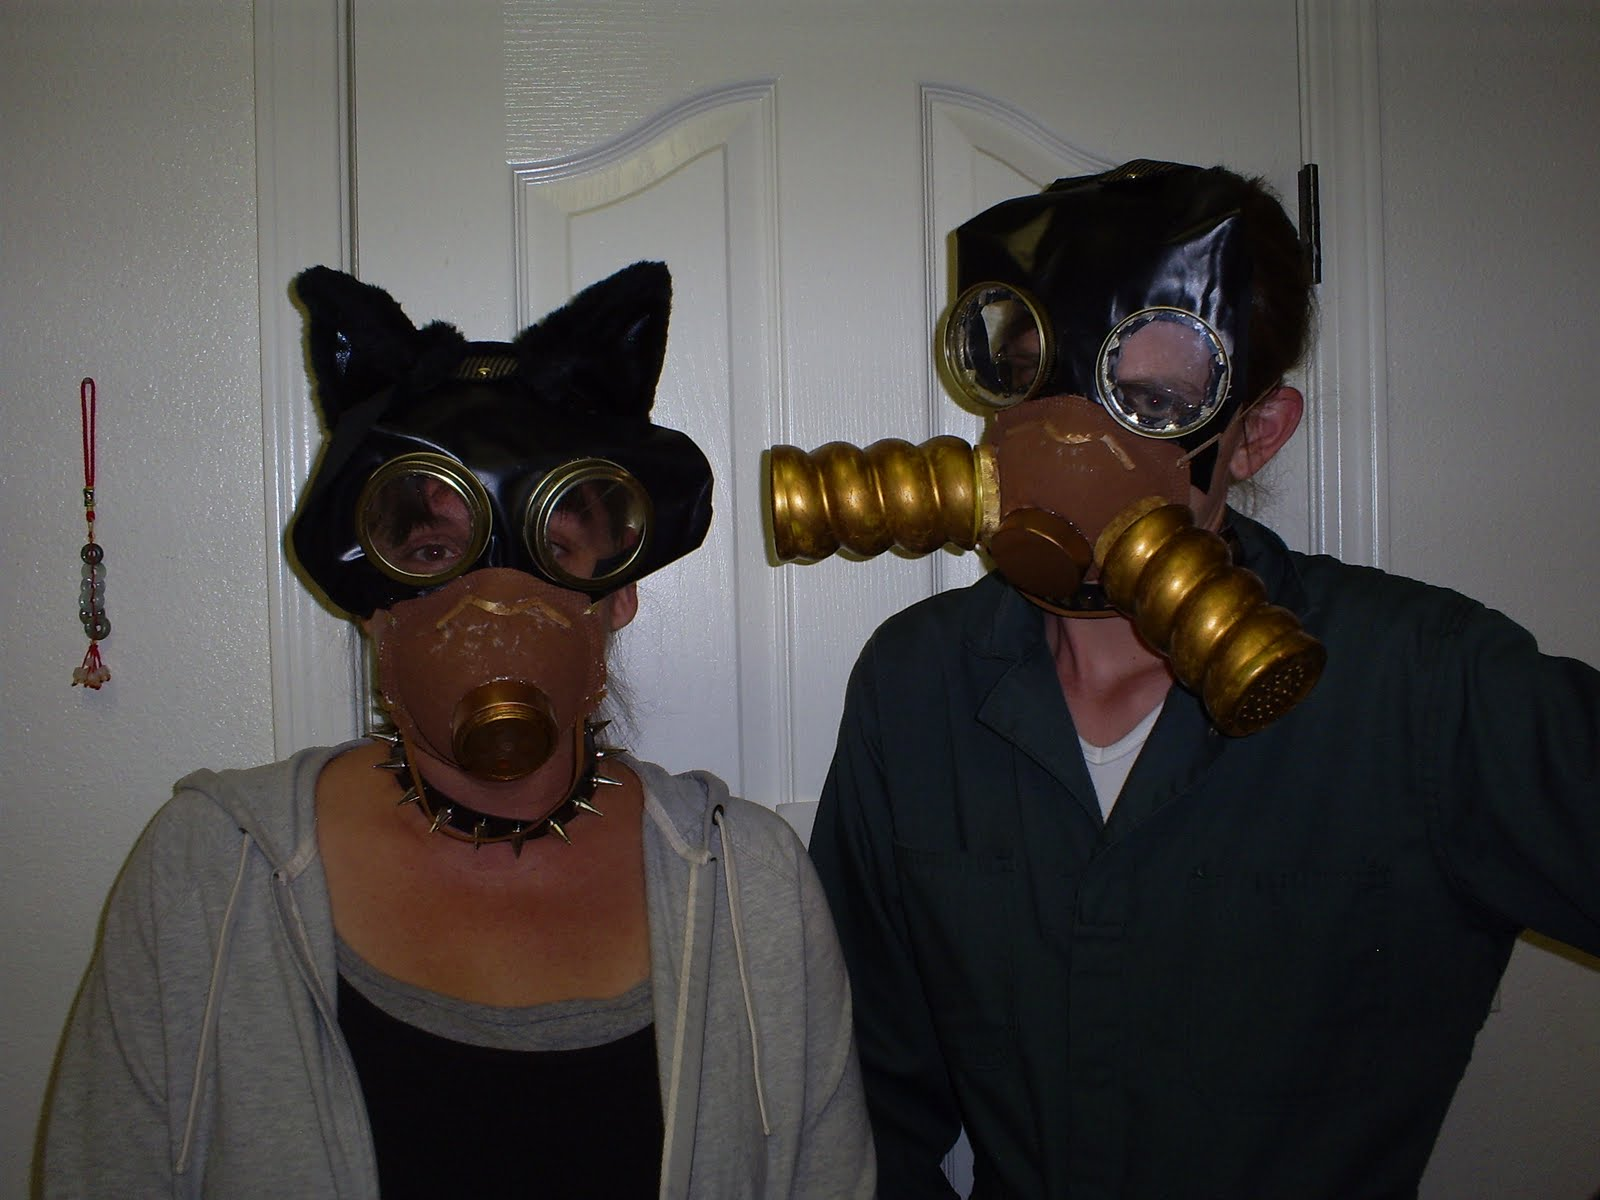 How to Make a Gas Mask How to Make a Gas Mask new images